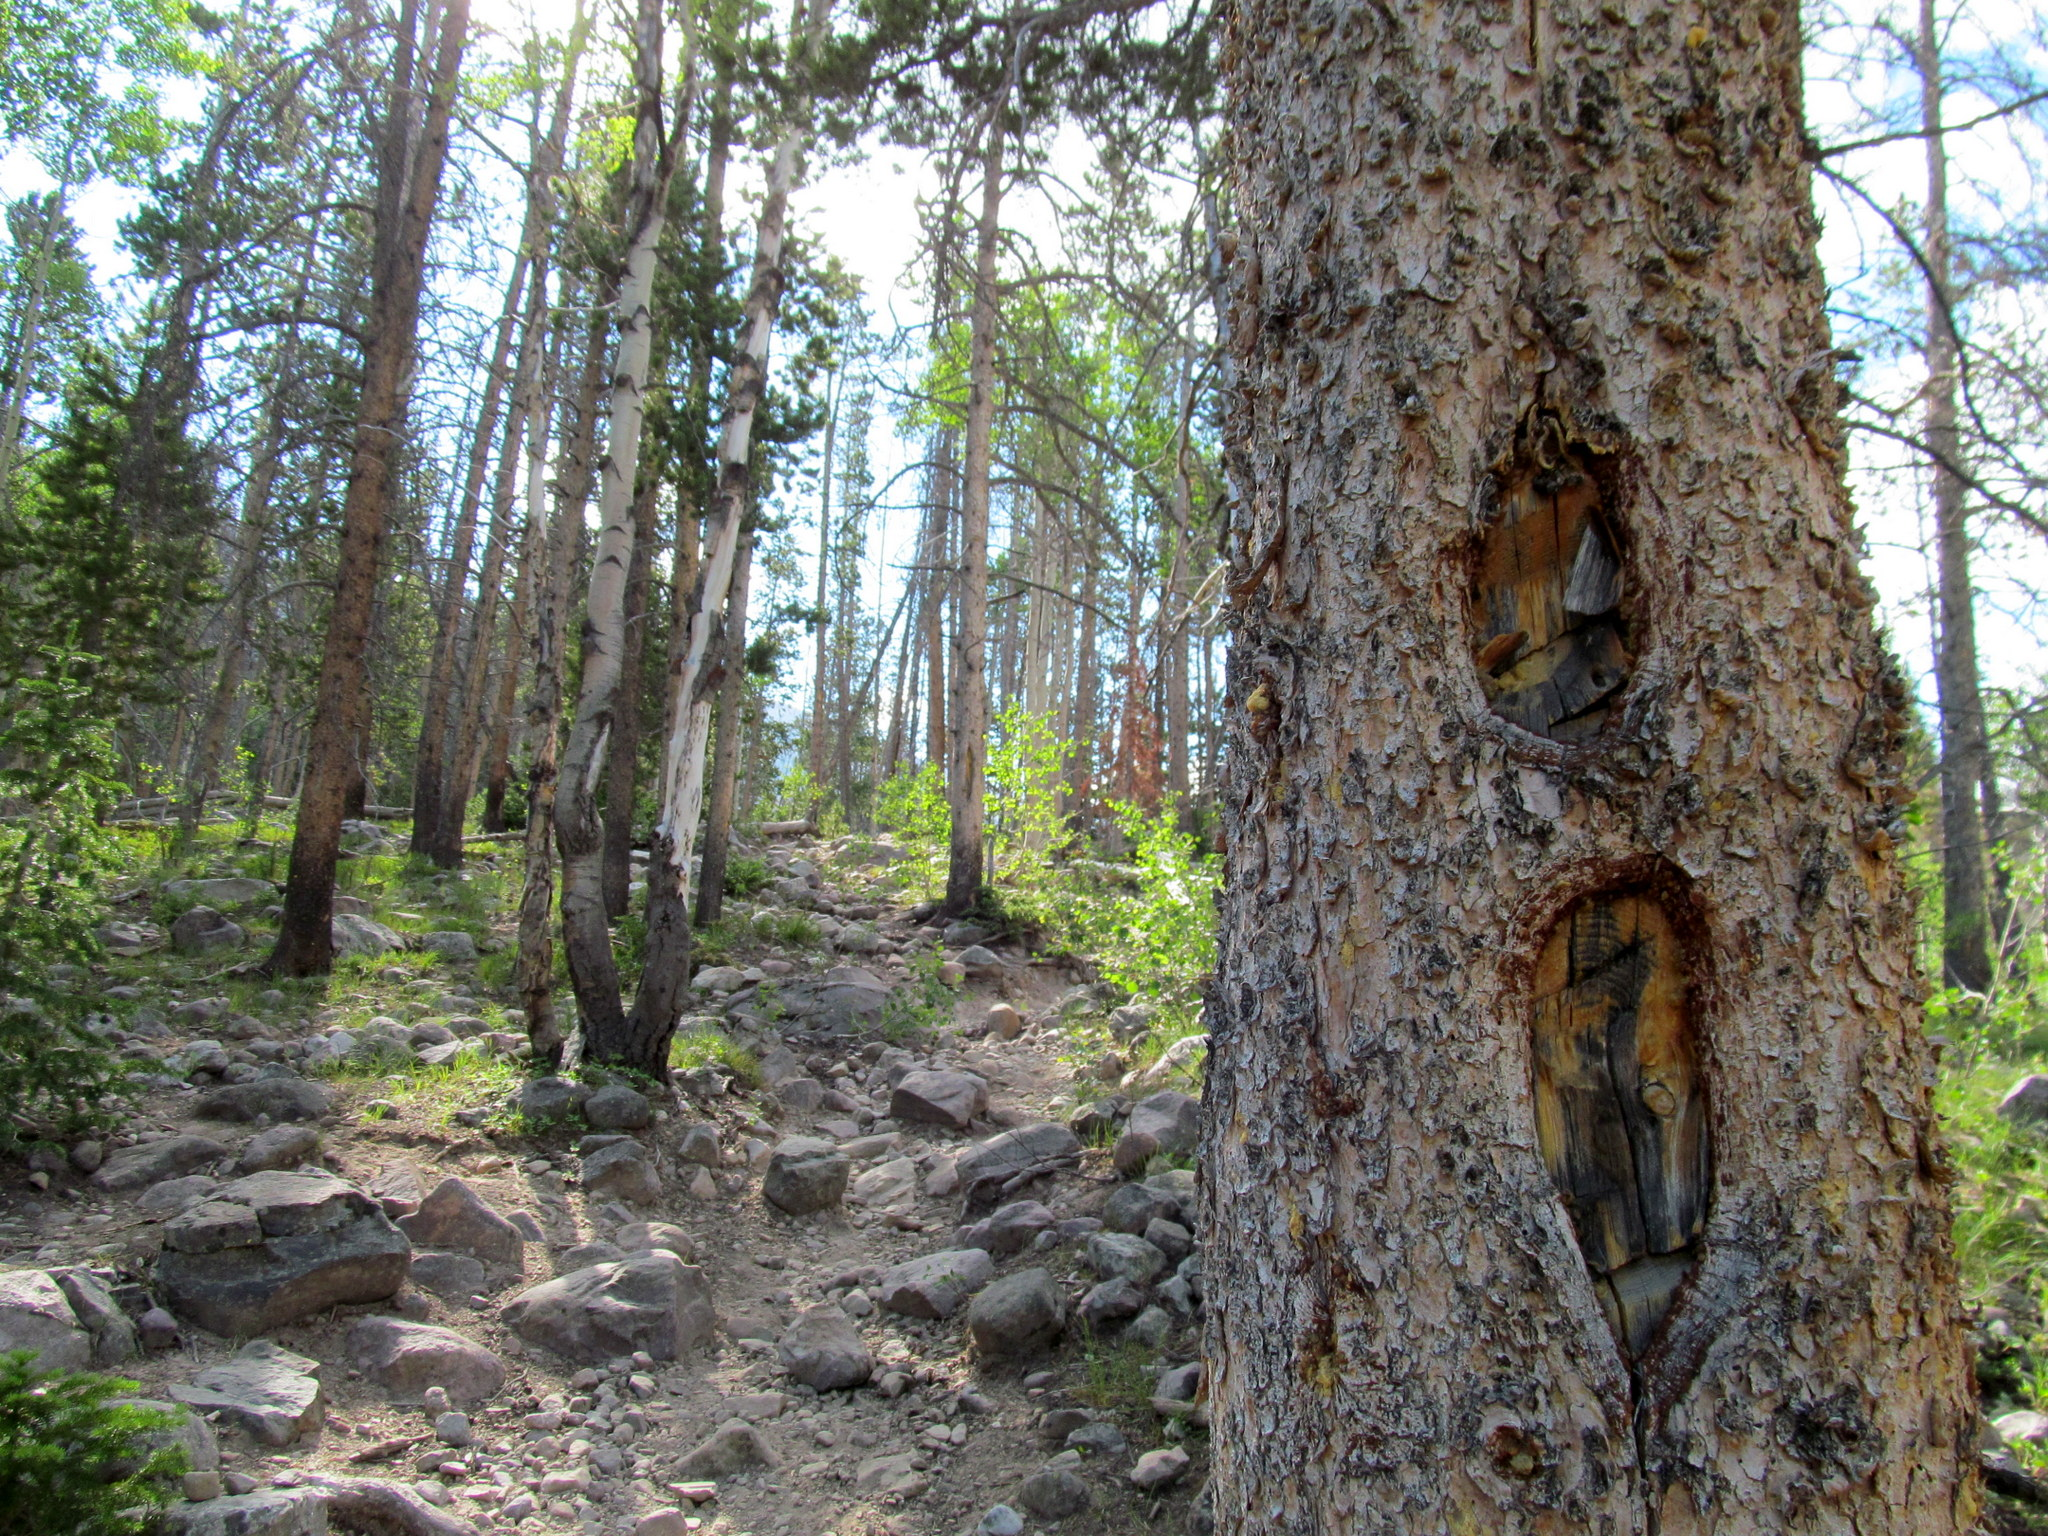 Photo: Blazed pine tree and steep, rocky trail